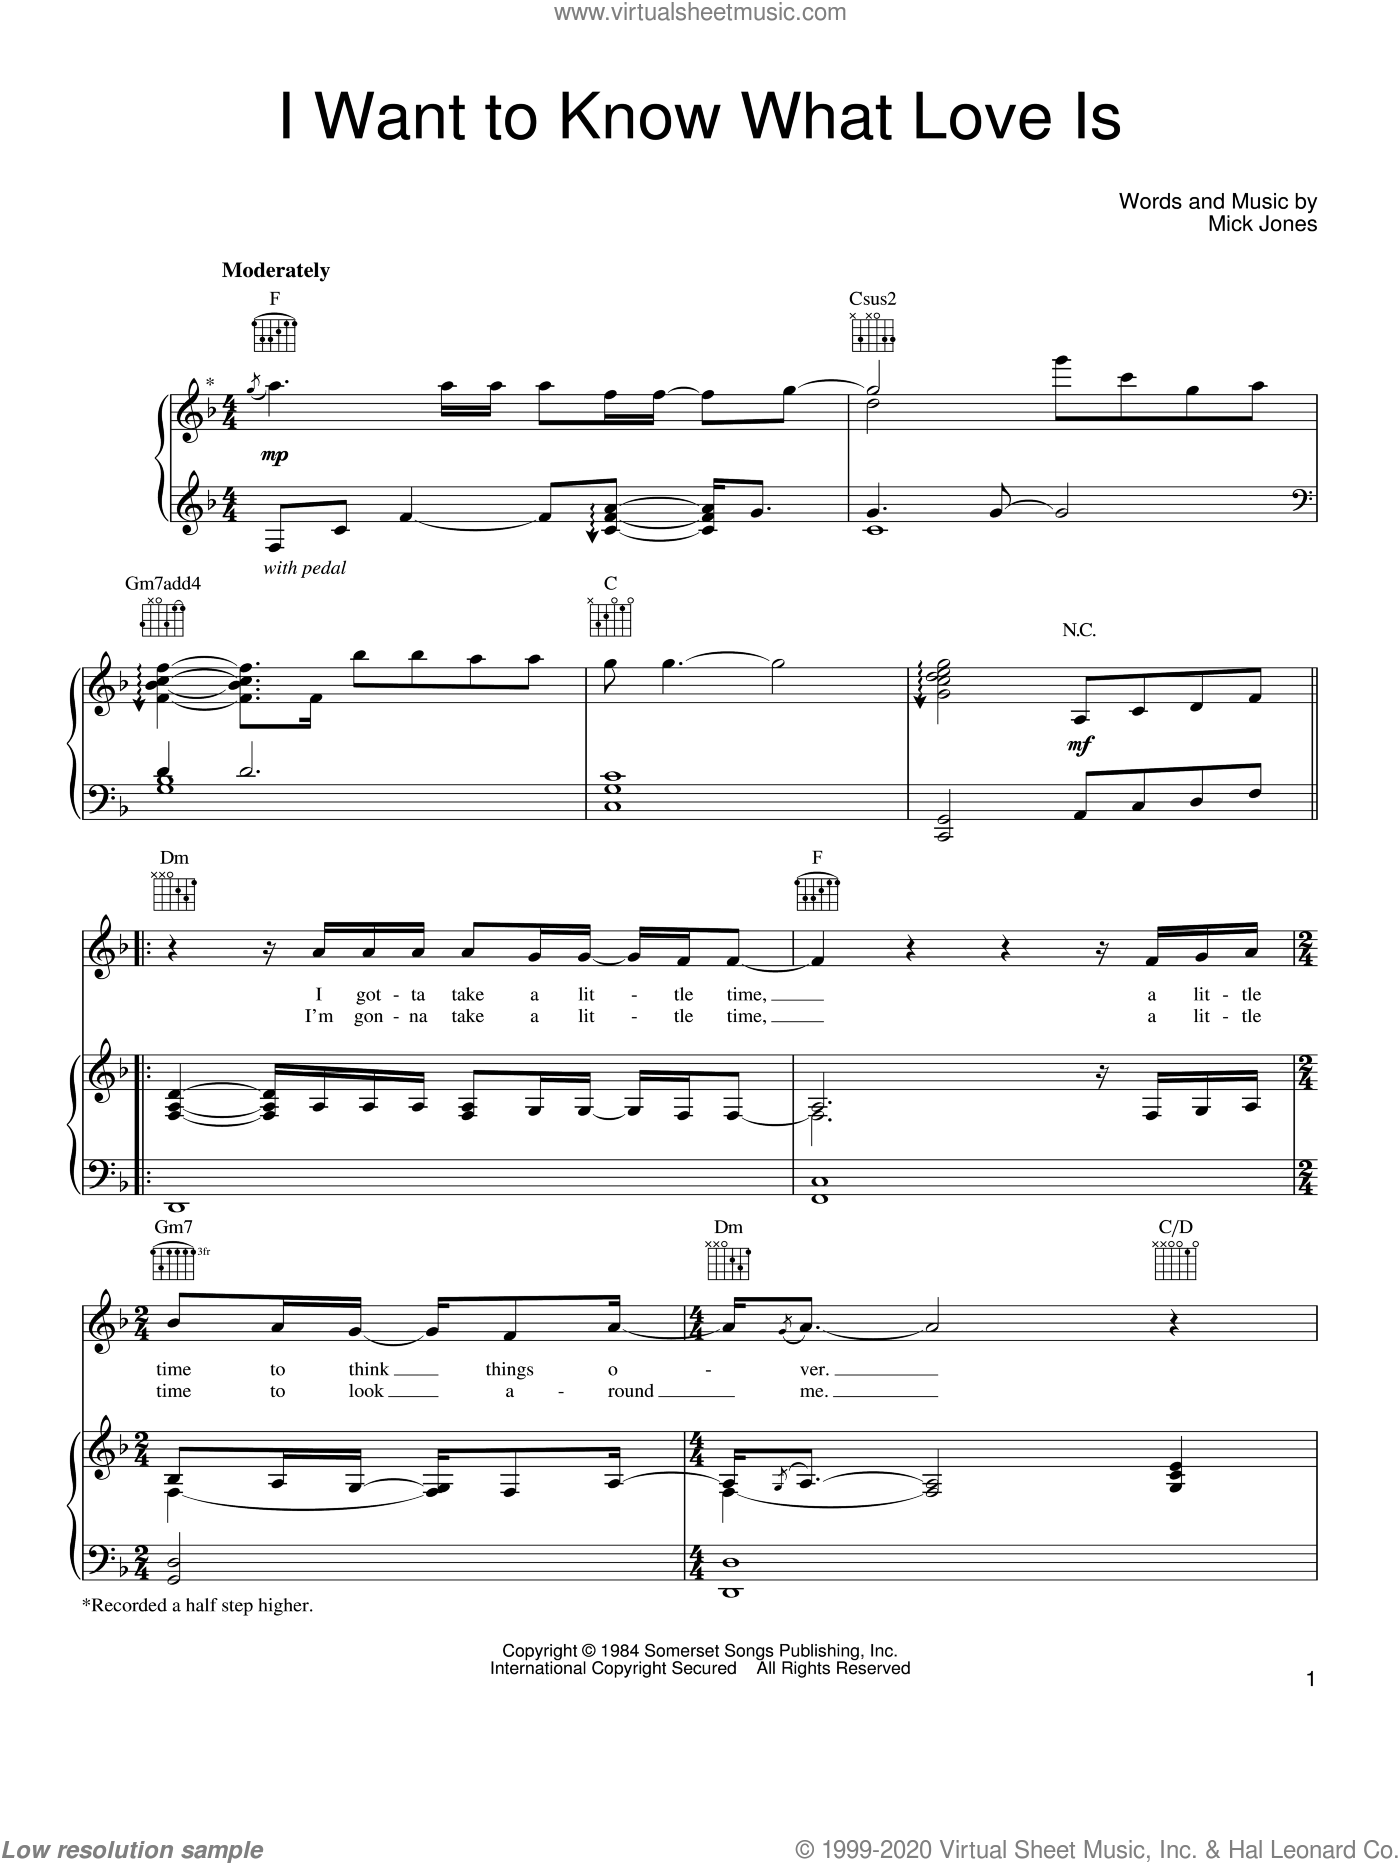 I Want To Know What Love Is sheet music for voice, piano or guitar by Foreigner, Mariah Carey and Mick Jones, intermediate skill level